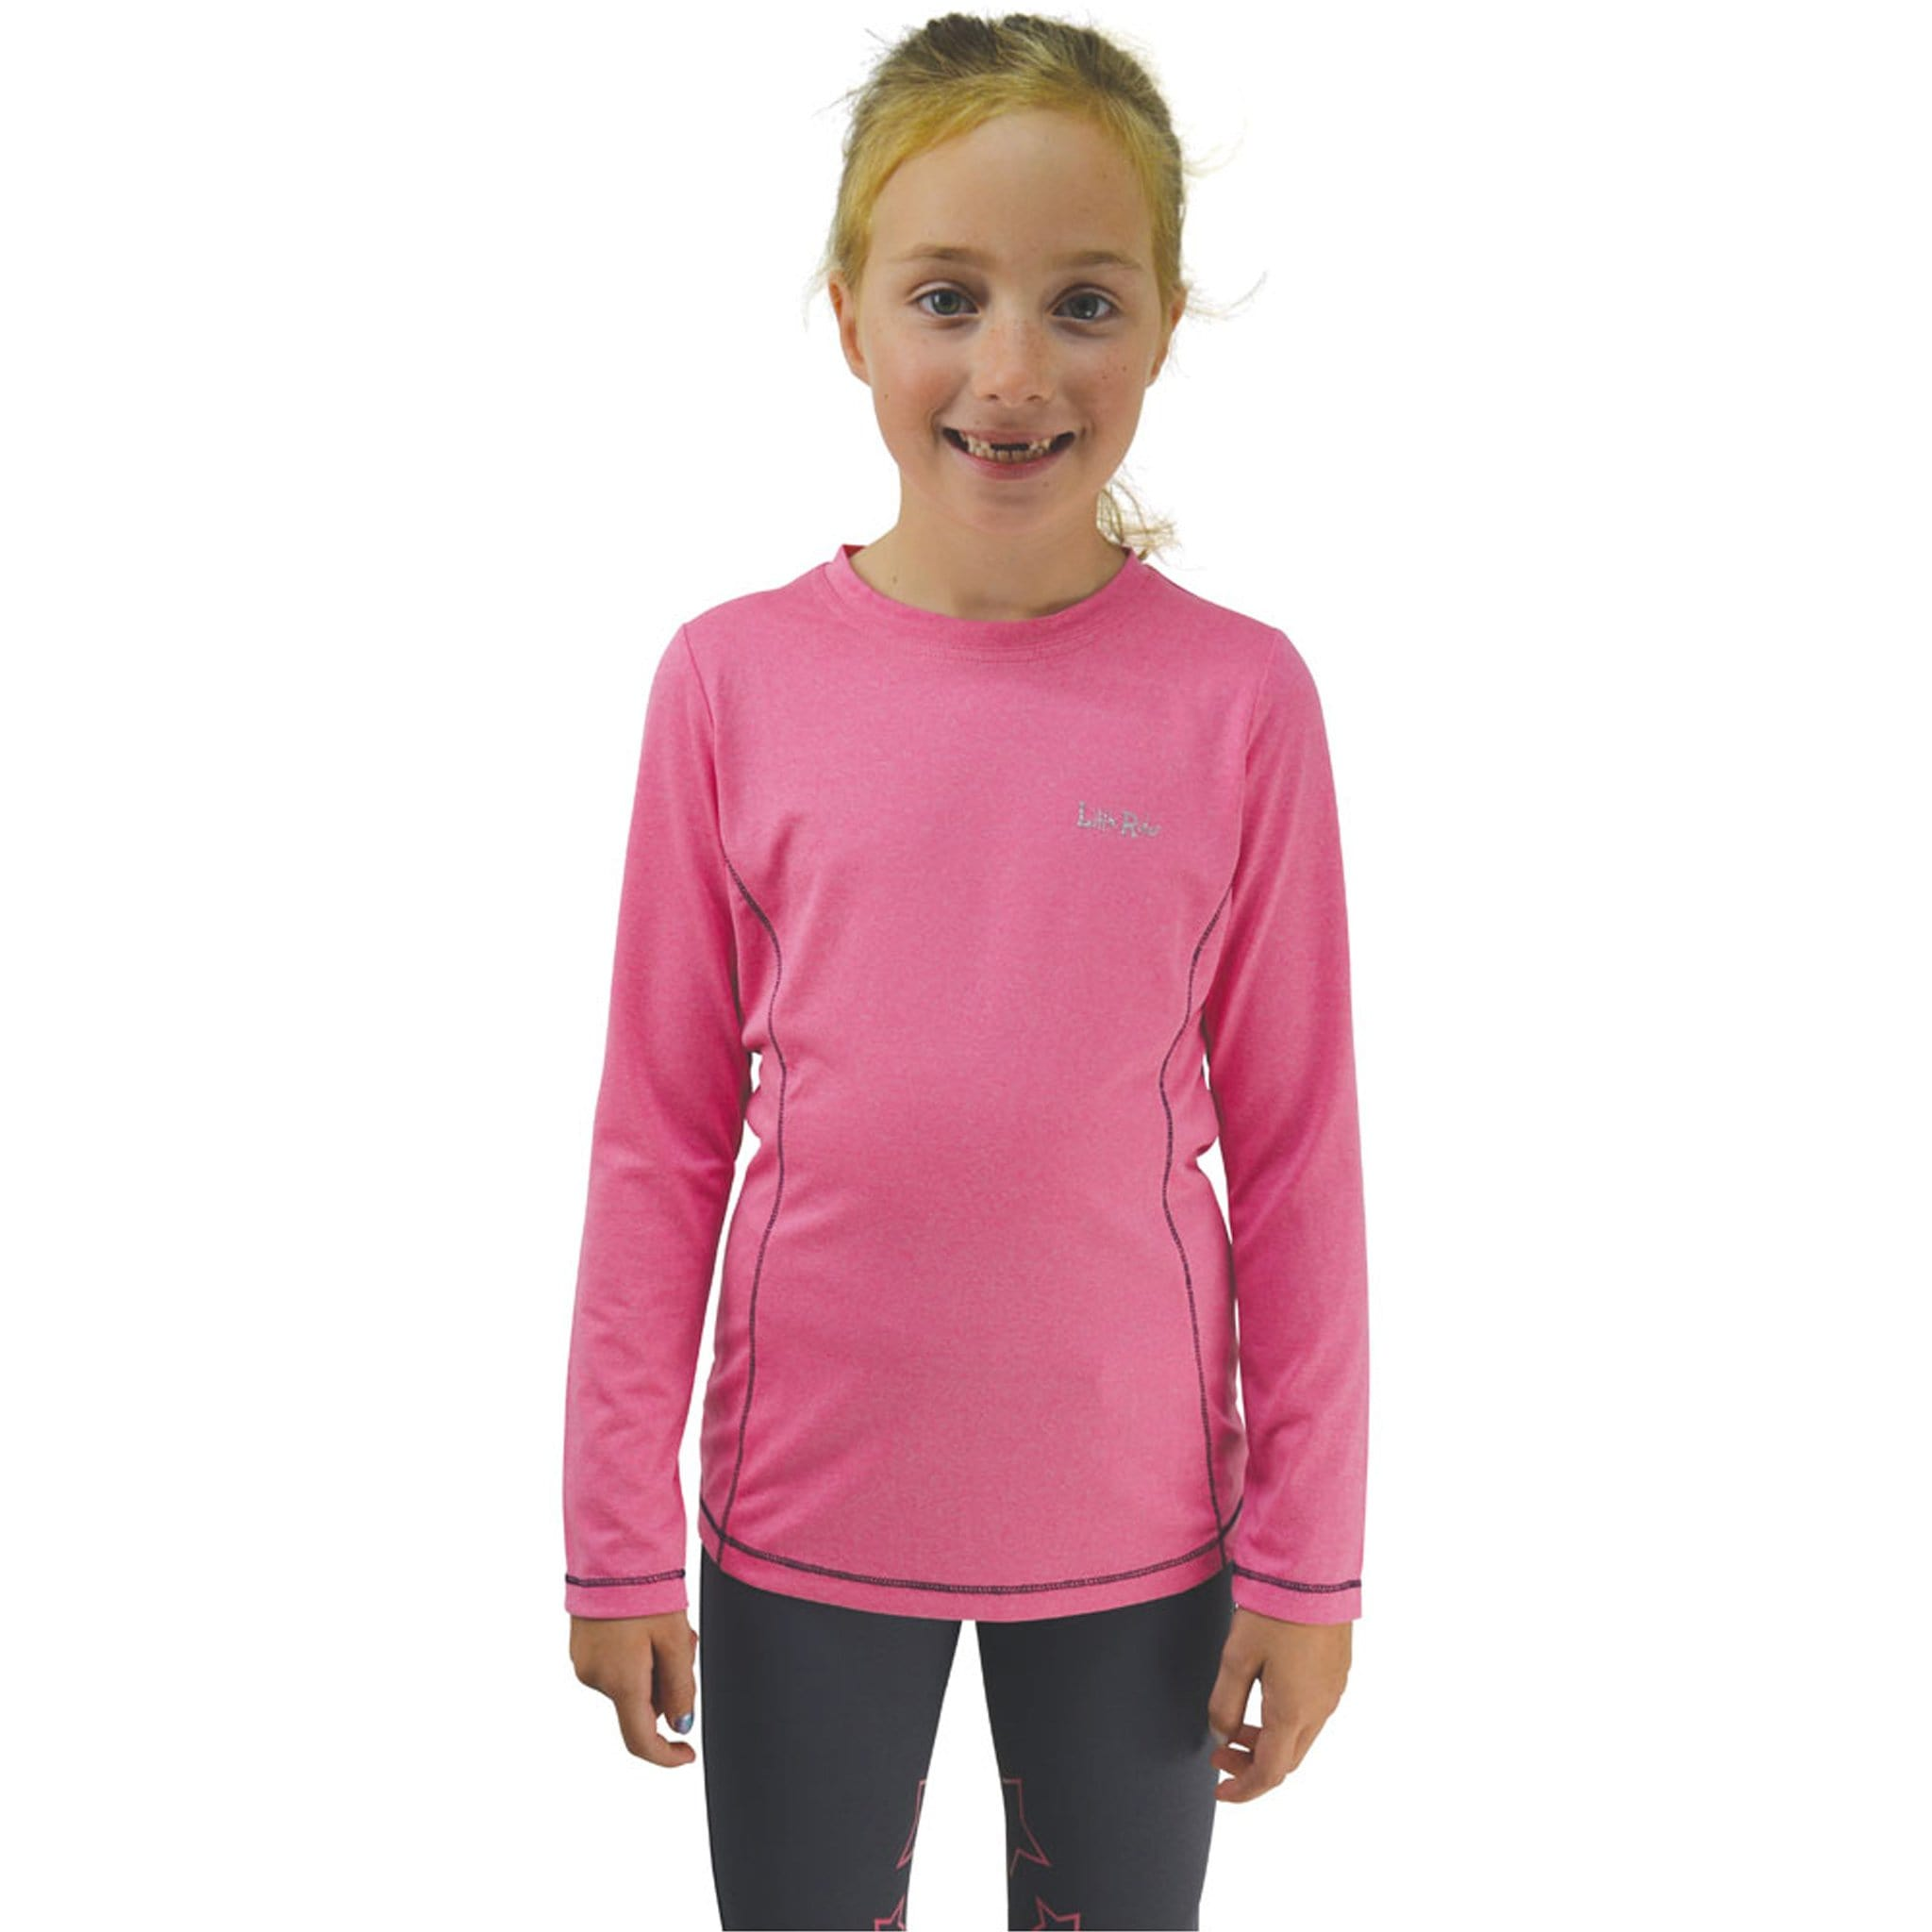 Children's Hy Little Rider Stretch Base Layer Close Up Front View 20852.